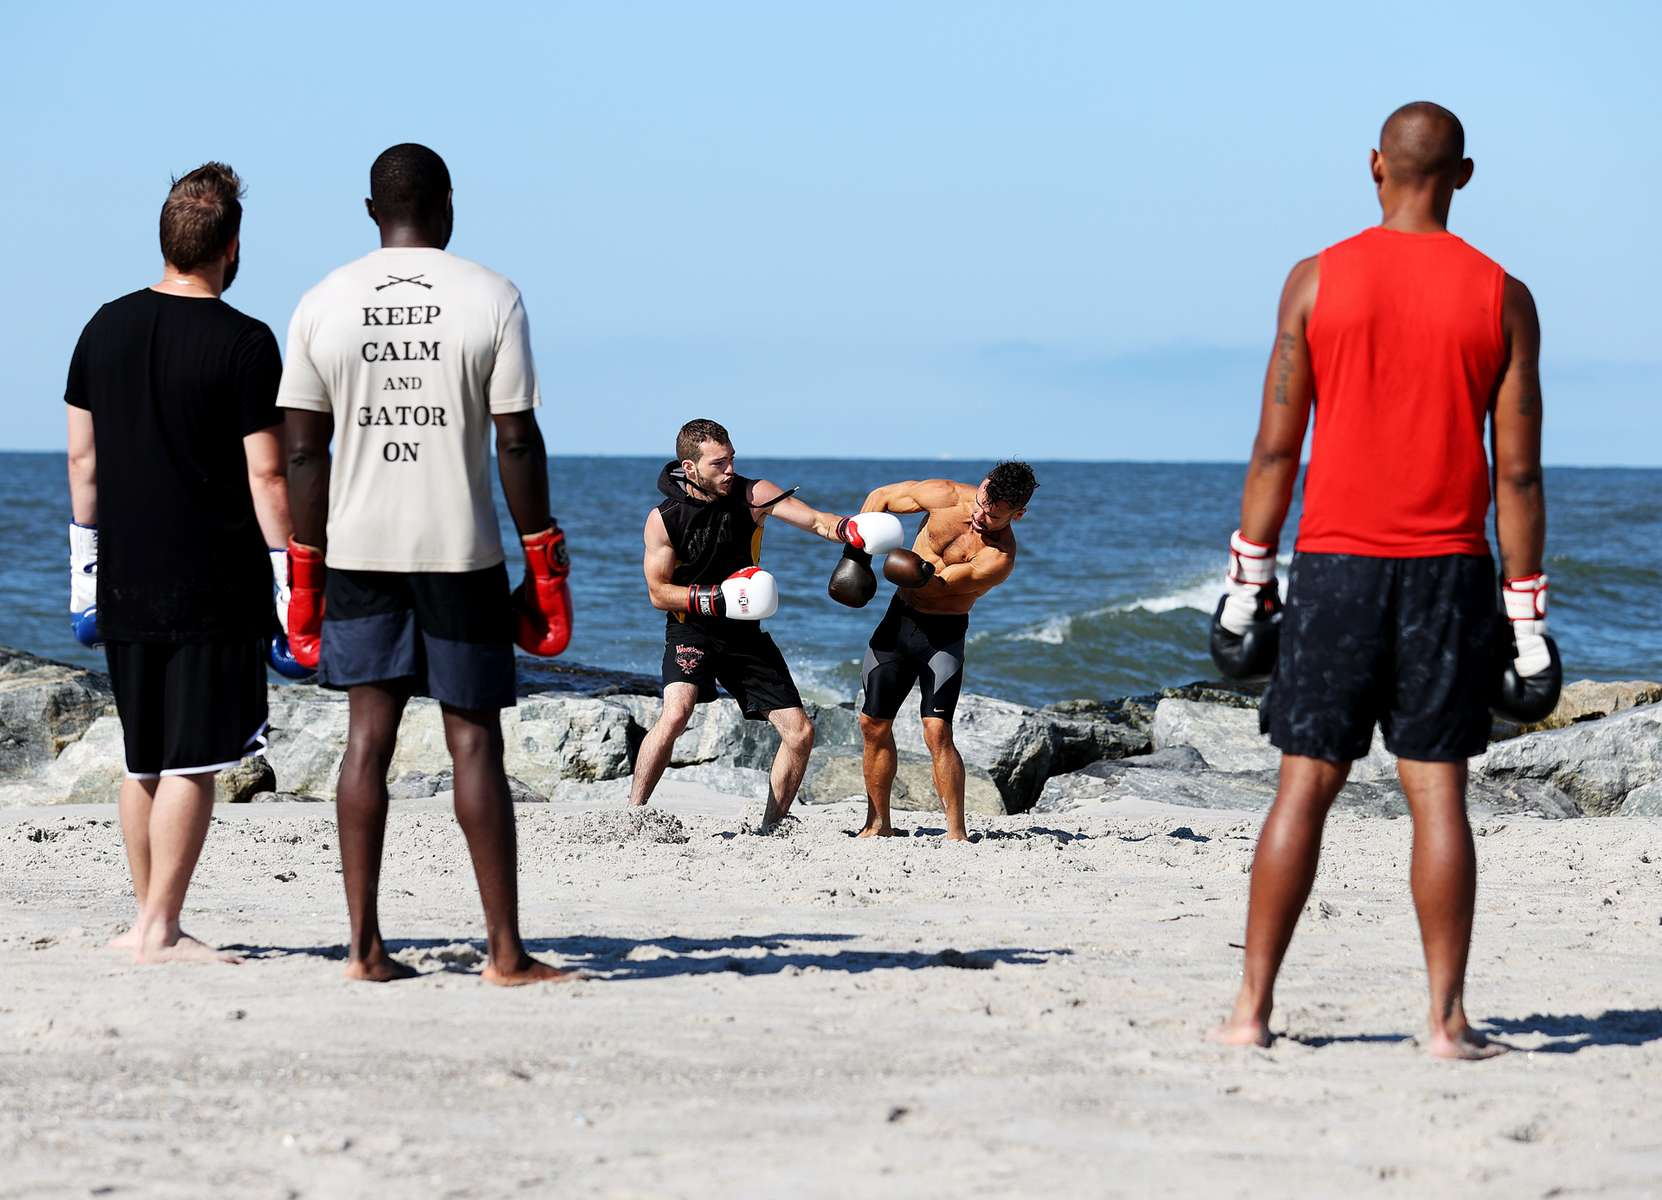 Amateur Boxers Dennis Guerrero and Anthony Lopez who are members of the {quote}Life Outside the Box{quote} Fitness Club, participate in a sparring session at the beach on August 18, 2020 in Long Beach, New York. Gyms, which have been closed in New York since mid-March to help prevent the spread of the coronavirus, will be allowed to open again as soon as August 24th Governor Andrew Cuomo has announced.  Gyms will be limited to a third of their capacity, and they need to maintain a sign-in sheet to help contact tracers in case of a virus outbreak. Air filters must be able to help prevent the transmission of viral particles. People must wear masks at all times